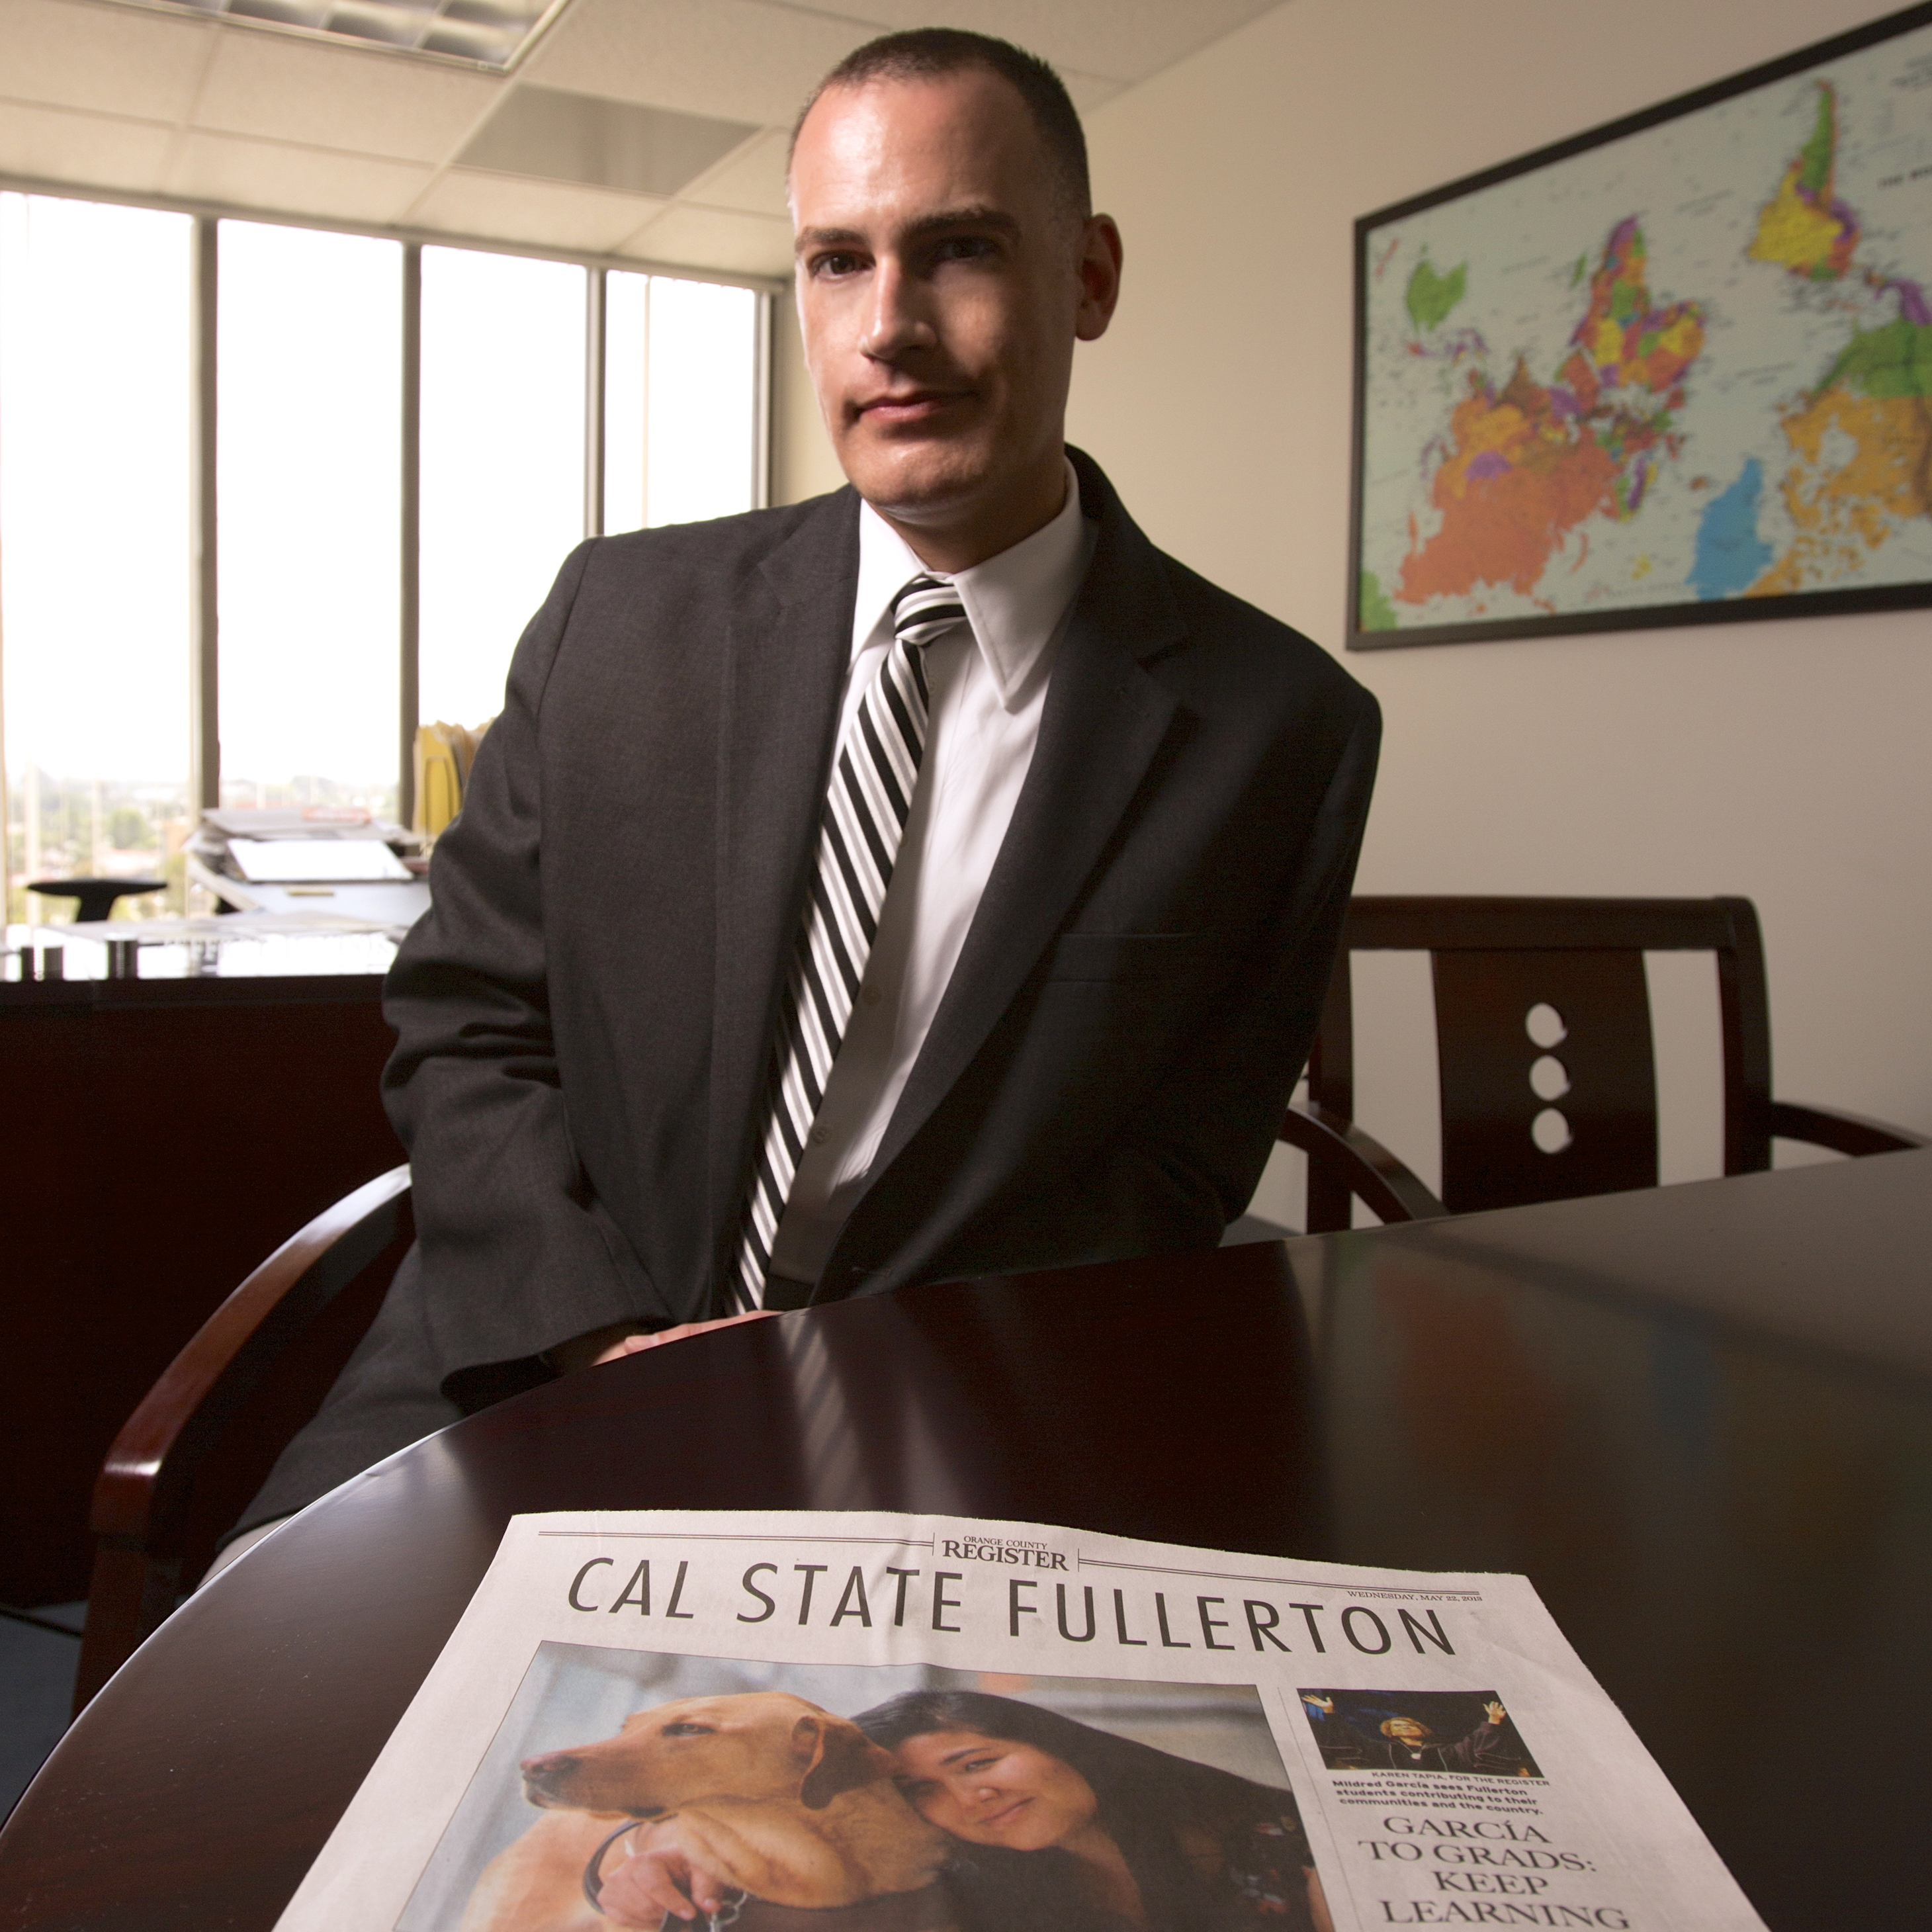 Jeffrey Cook, chief communications officer at Cal State, Fullerton, says The Orange County Register's proposal to have local universities fund the paper's coverage of them seemed almost too good to be true.